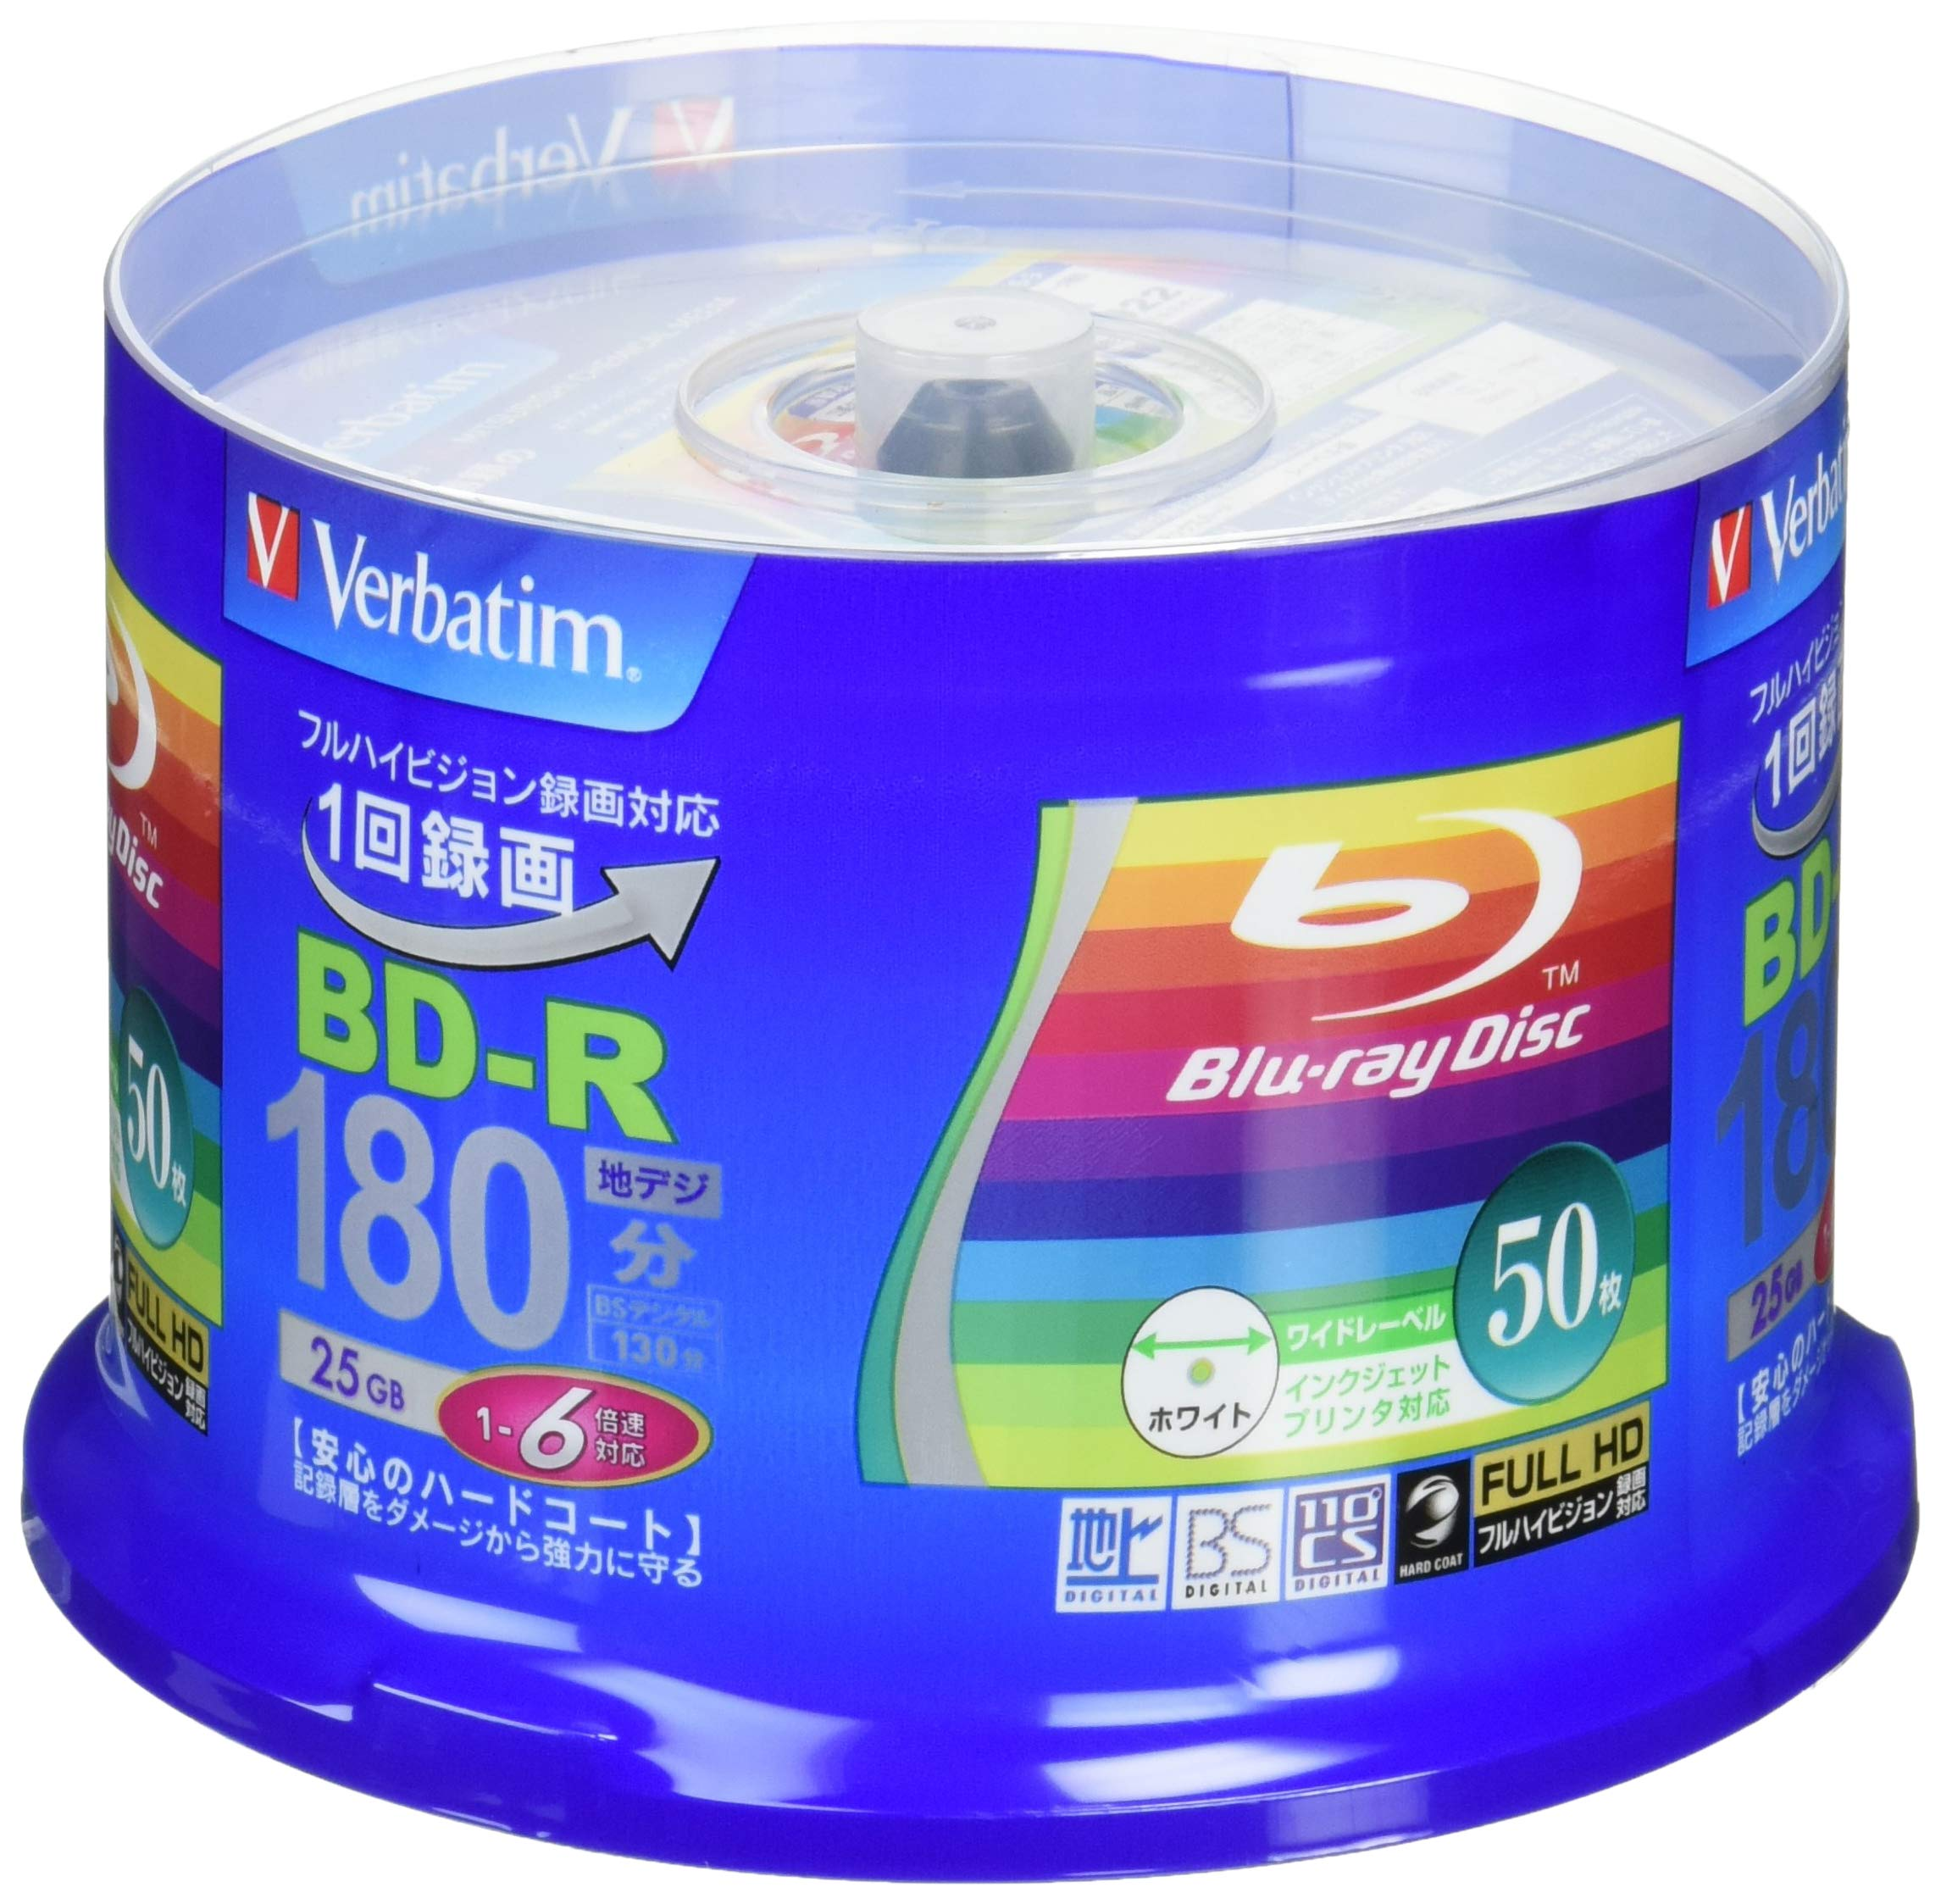 50 Verbatim Blu Ray 25 Gb Bd-r Single Layer 6X Speed Original Spindle Printable Blueray by Verbatim